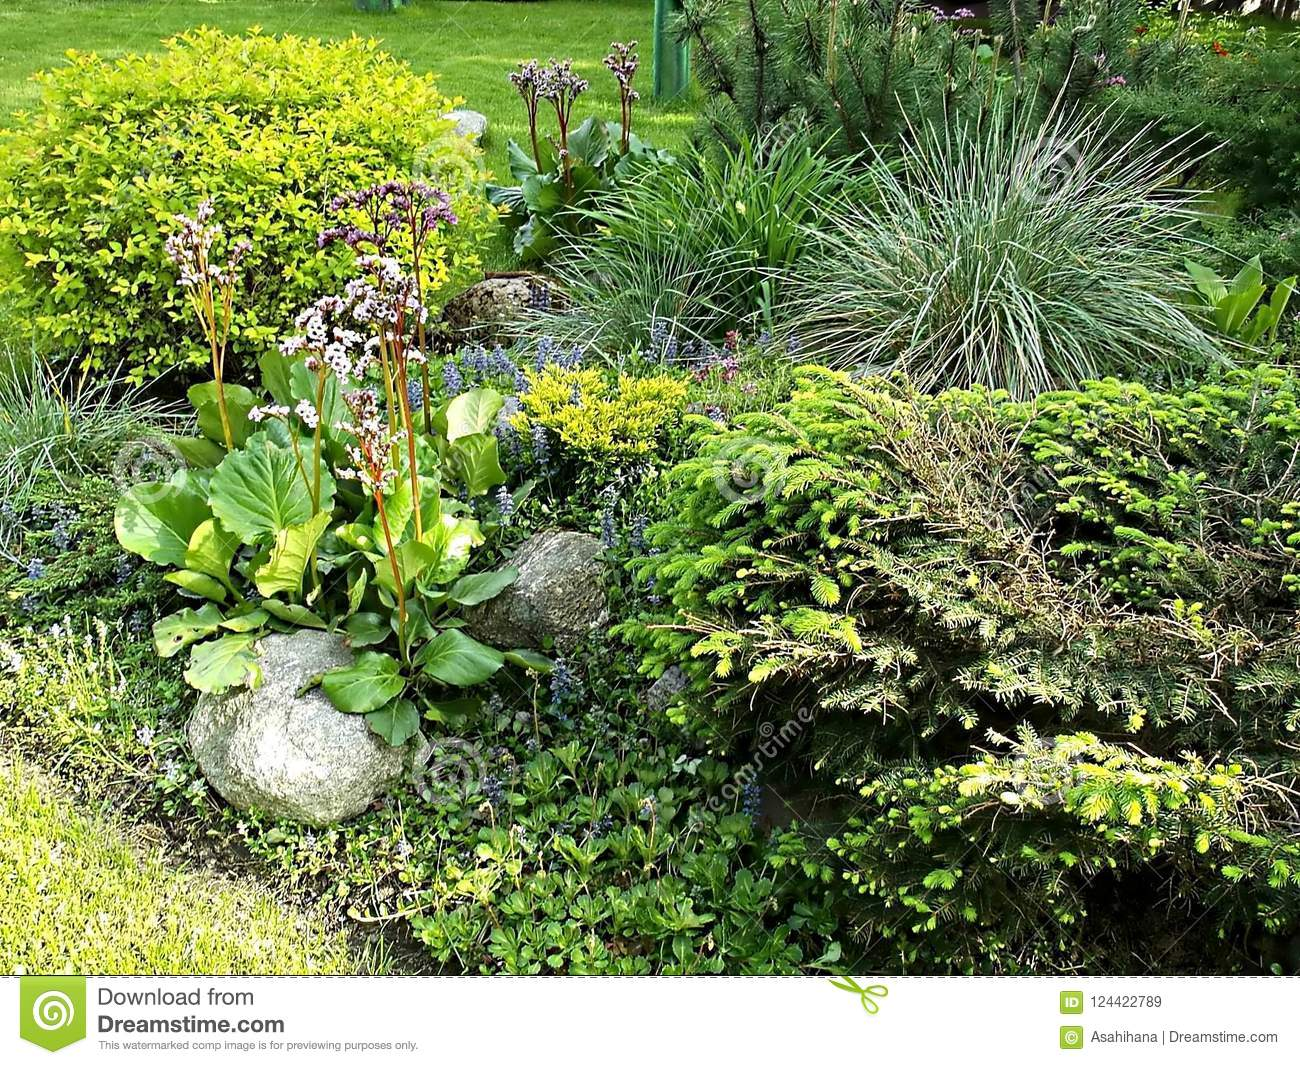 Landscape Design In A Cozy Garden. Flowers, Herbs, Bushes And Small on herb garden design software, herb garden layout design, herb garden design plans, herb container gardens, herb garden clip art, herb garden planning, herb garden ideas, herb landscaping, herb knot garden design,